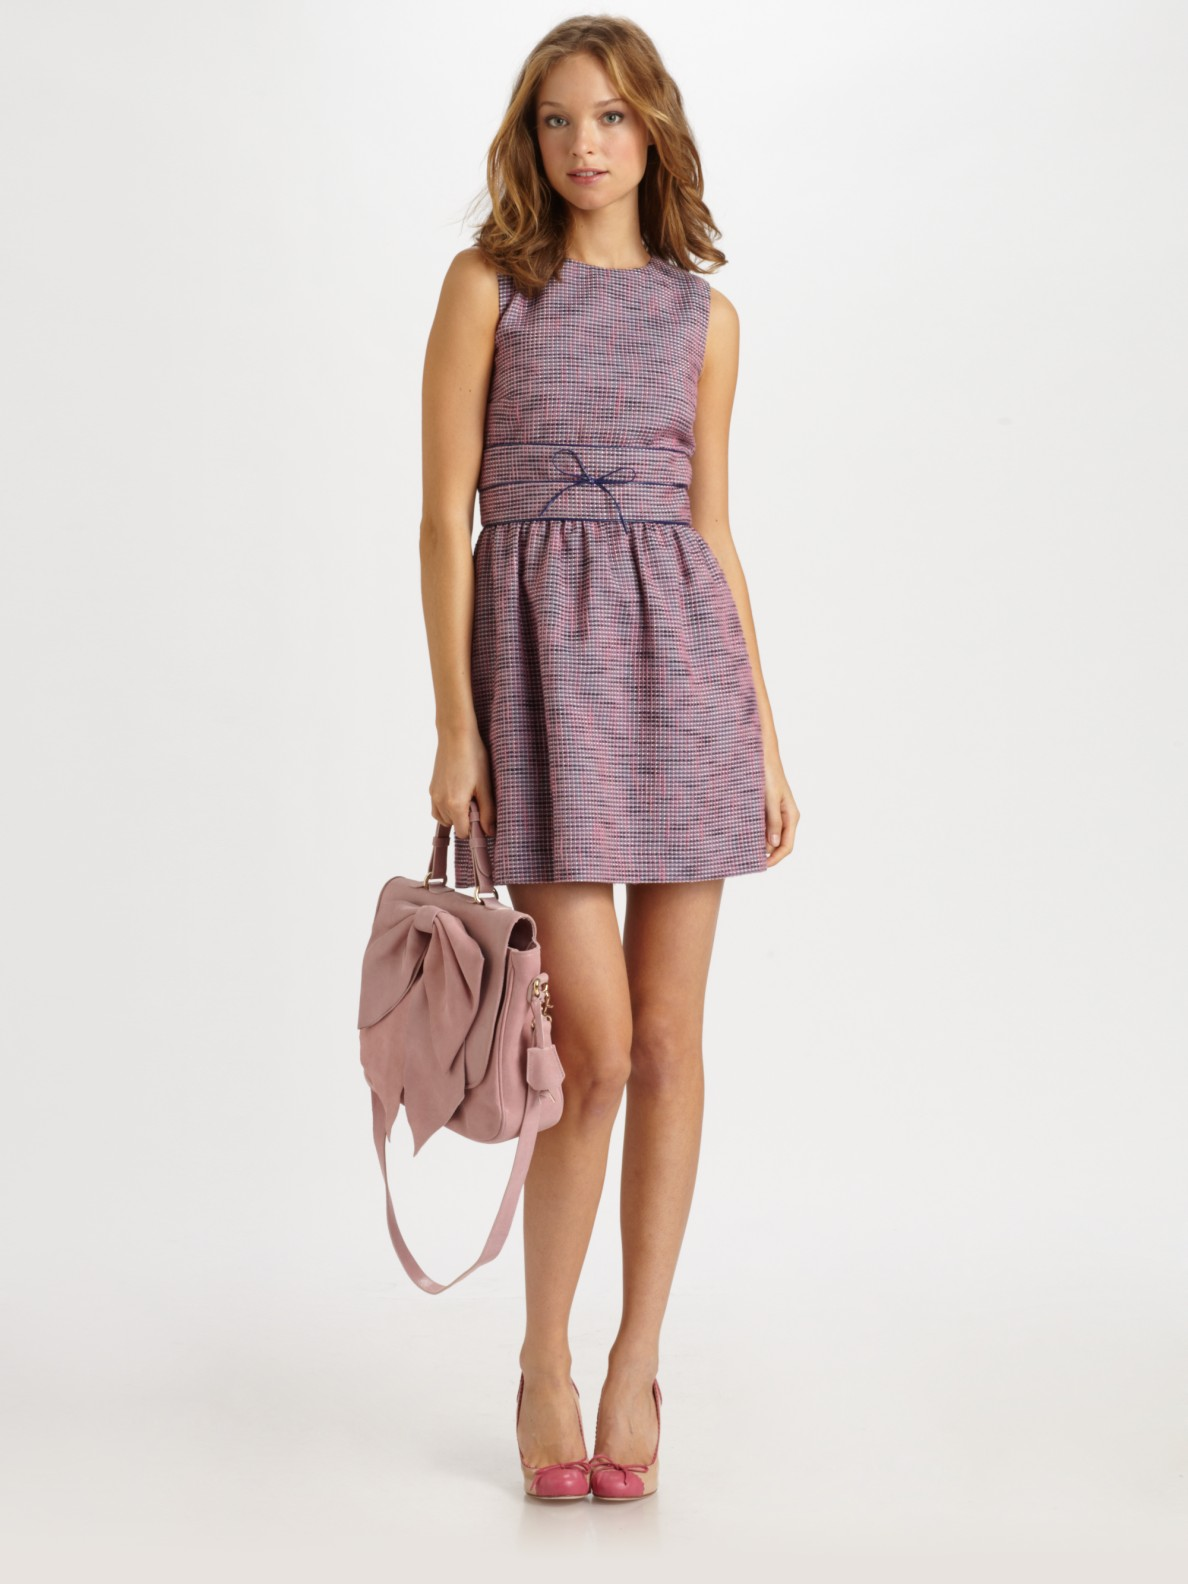 Red Valentino Tweed Dress In Pink Lyst